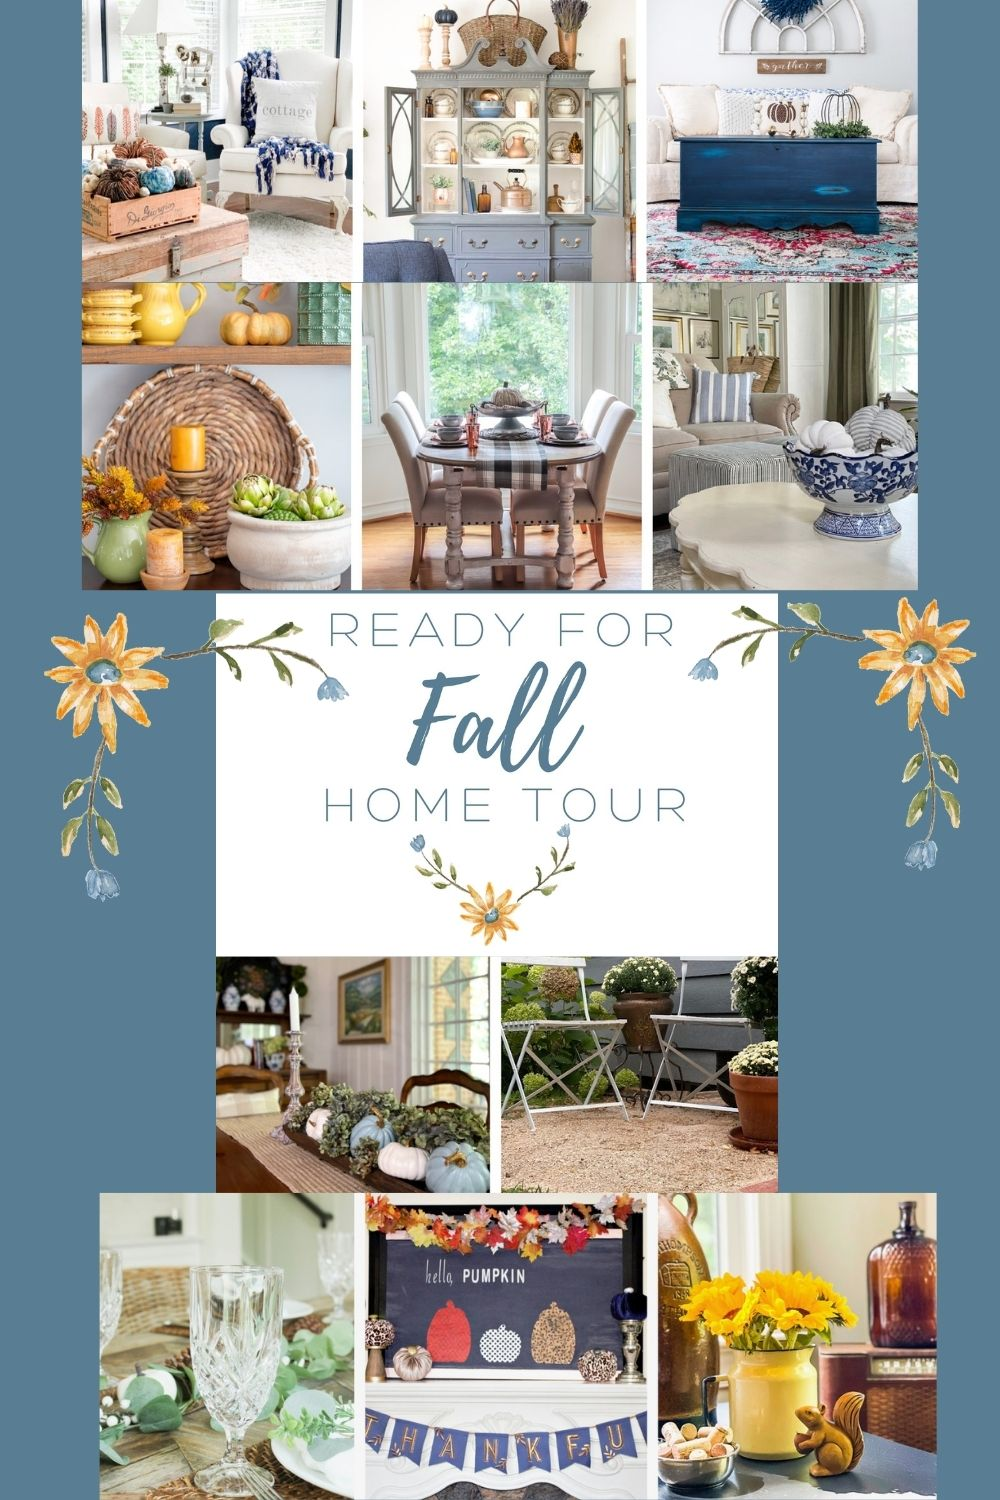 Ready for Fall Home Tour